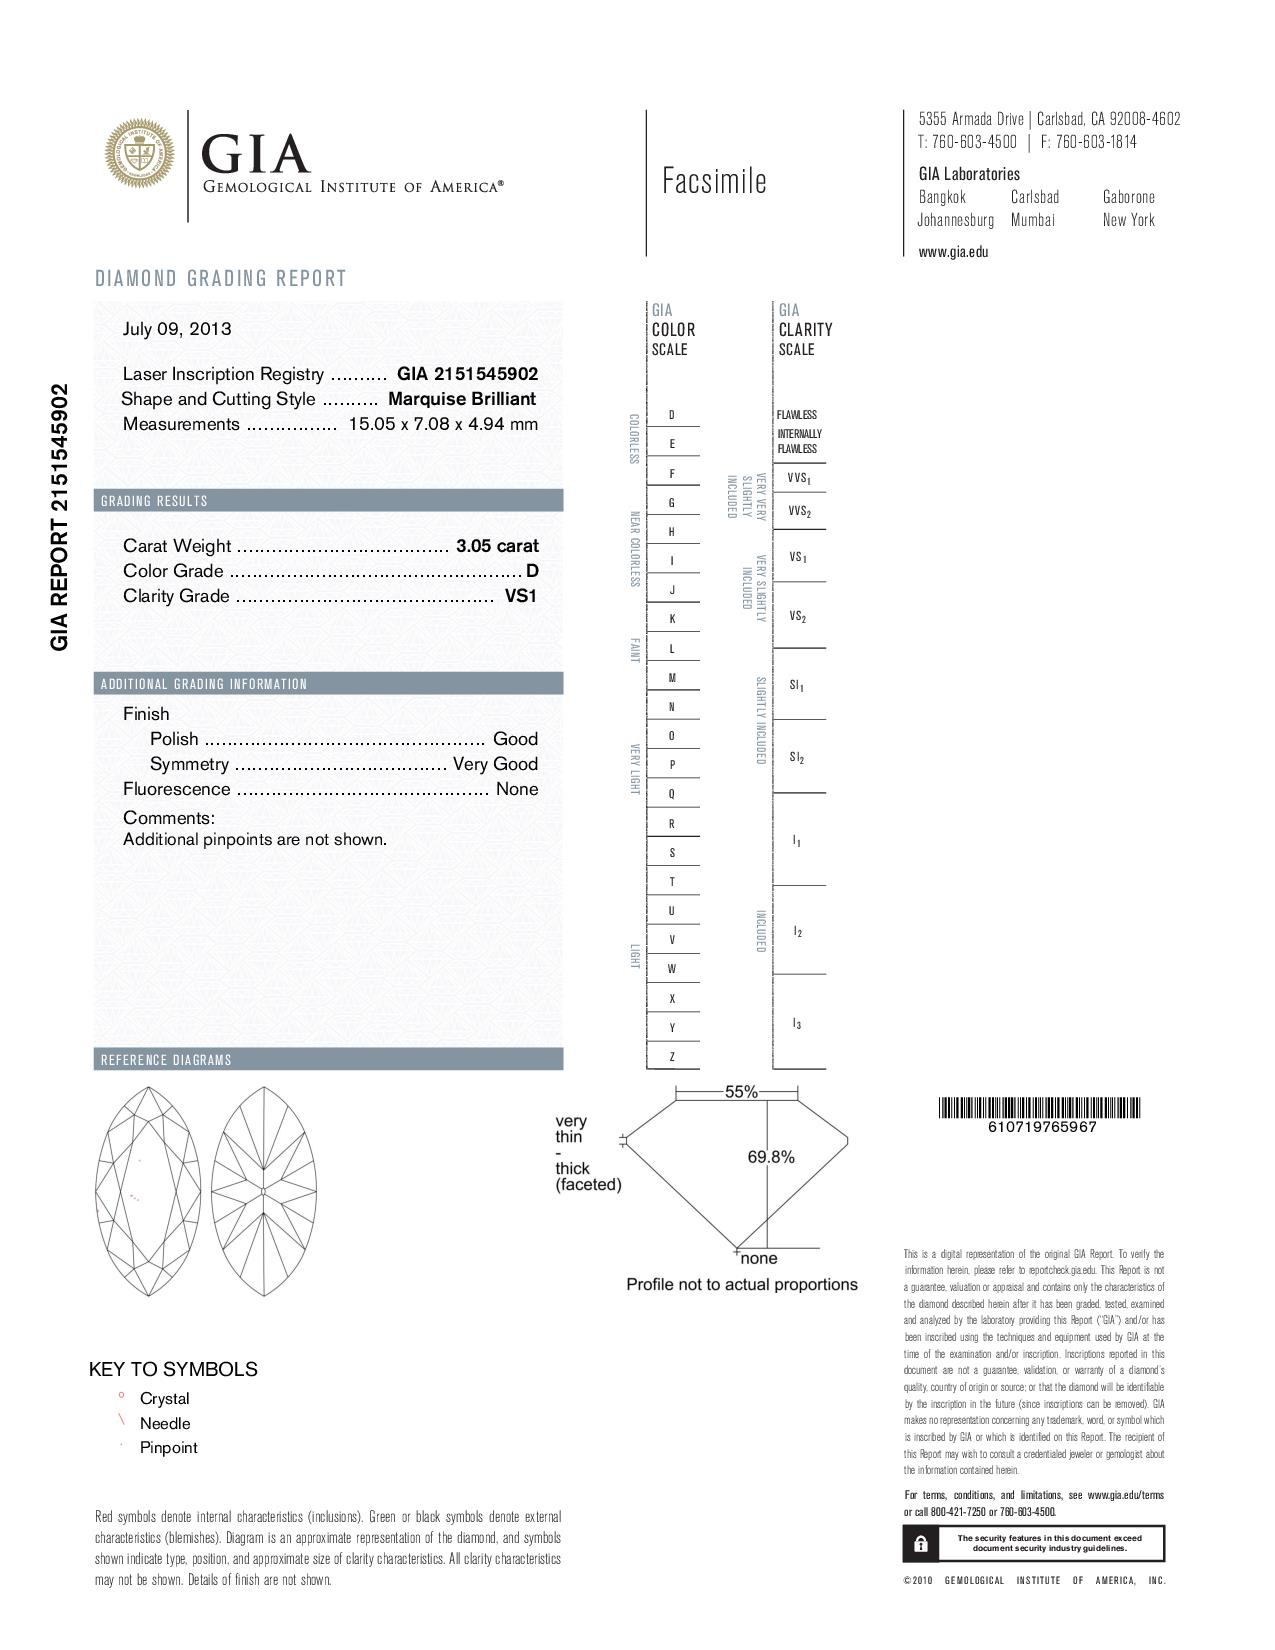 This is a 3.05 carat marquise shape, D color, VS1 clarity natural diamond accompanied by a GIA grading report.